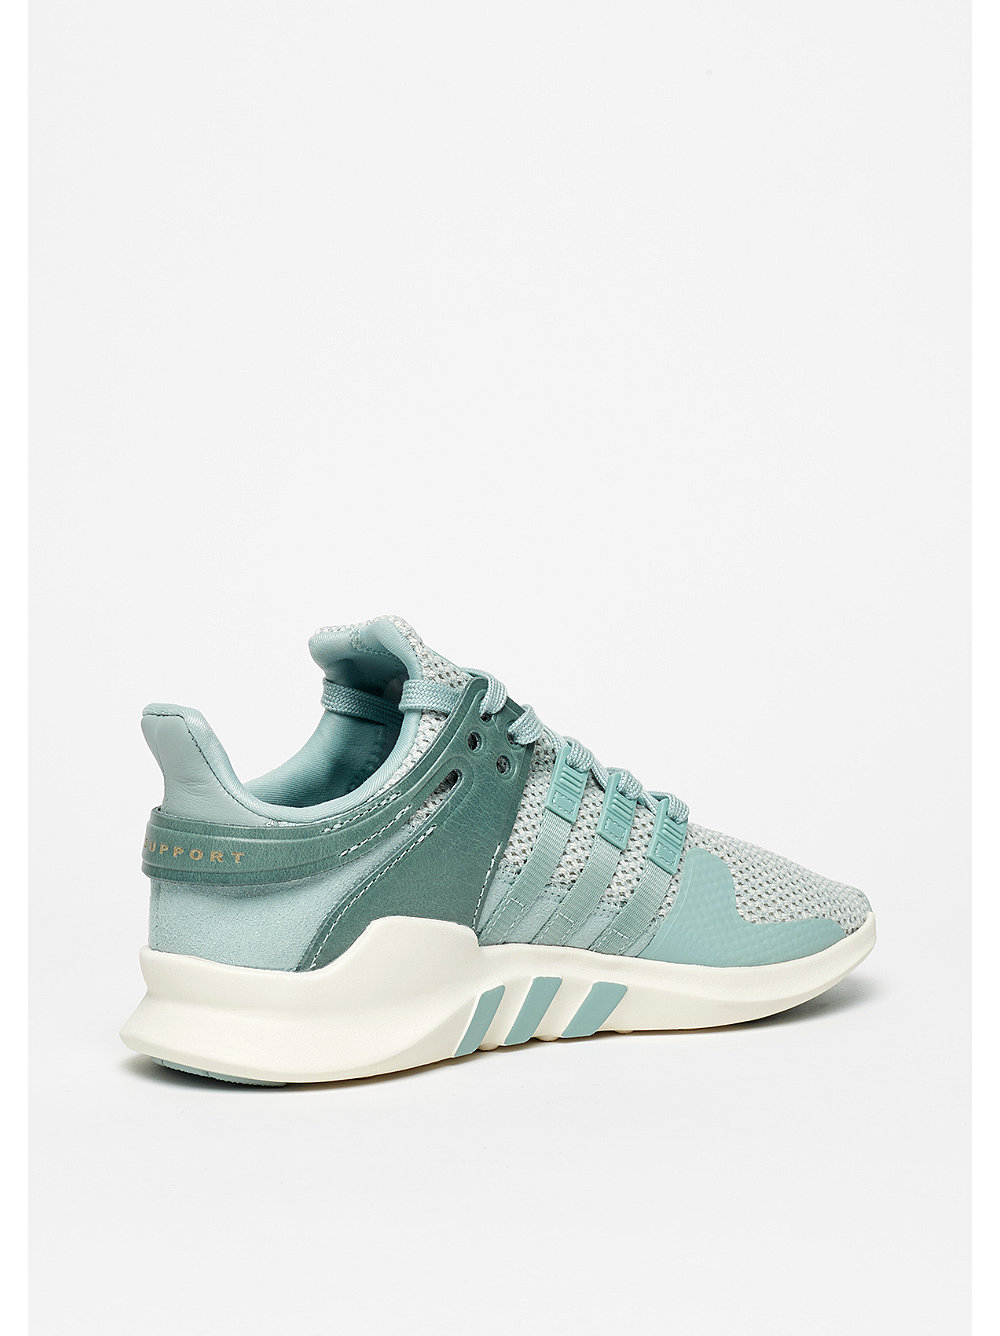 info for 9c719 26615 adidas EQT Support ADV tactile greentactile greenoff white